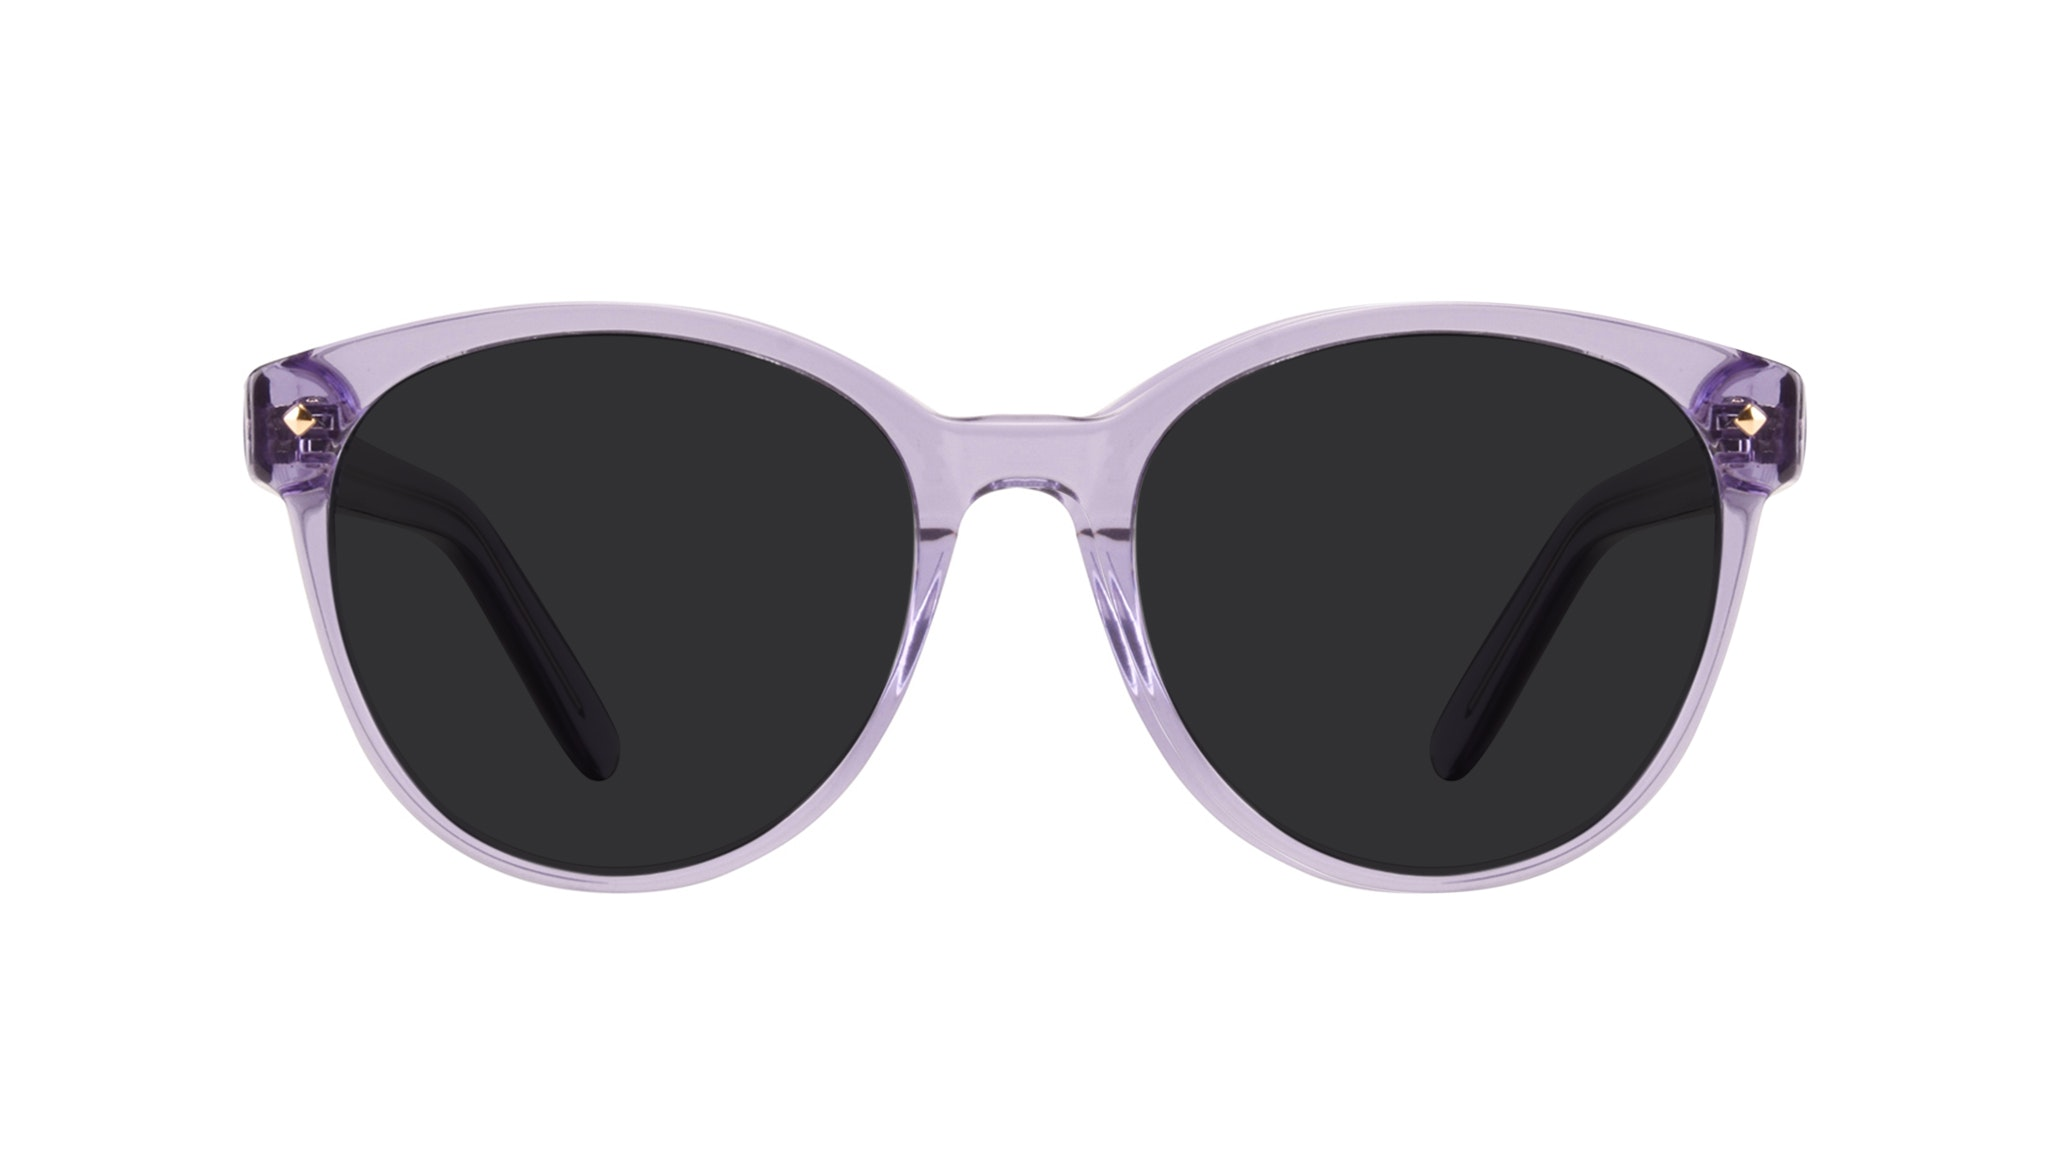 Affordable Fashion Glasses Round Sunglasses Women Eclipse Lavender Front